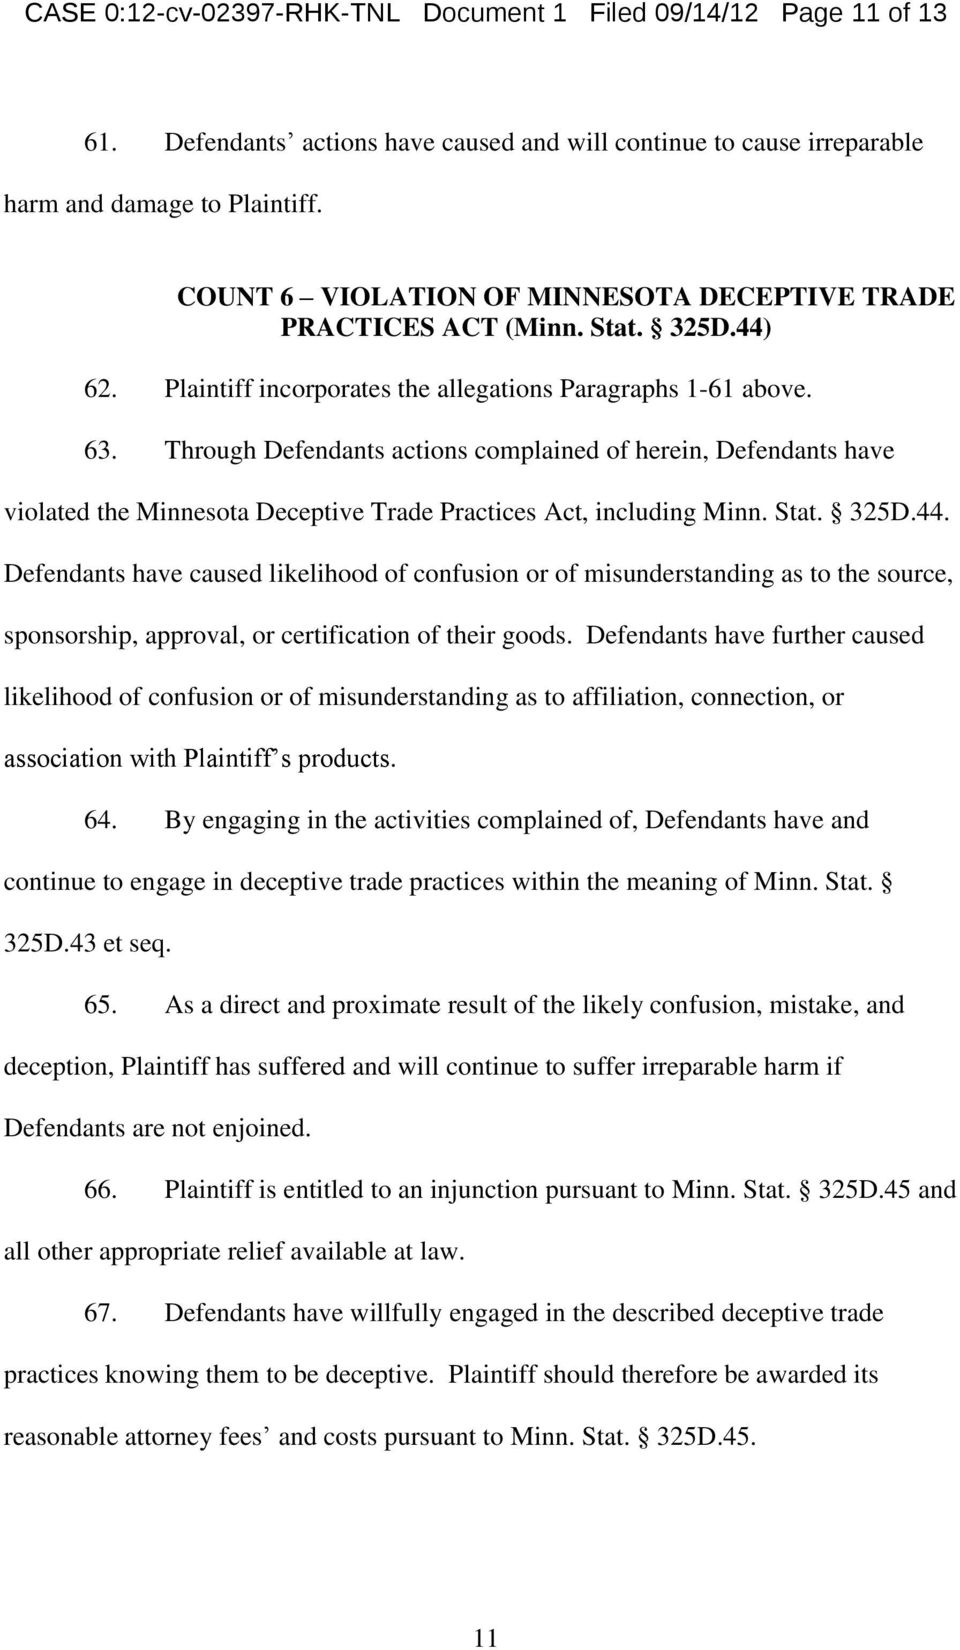 Through Defendants actions complained of herein, Defendants have violated the Minnesota Deceptive Trade Practices Act, including Minn. Stat. 325D.44.